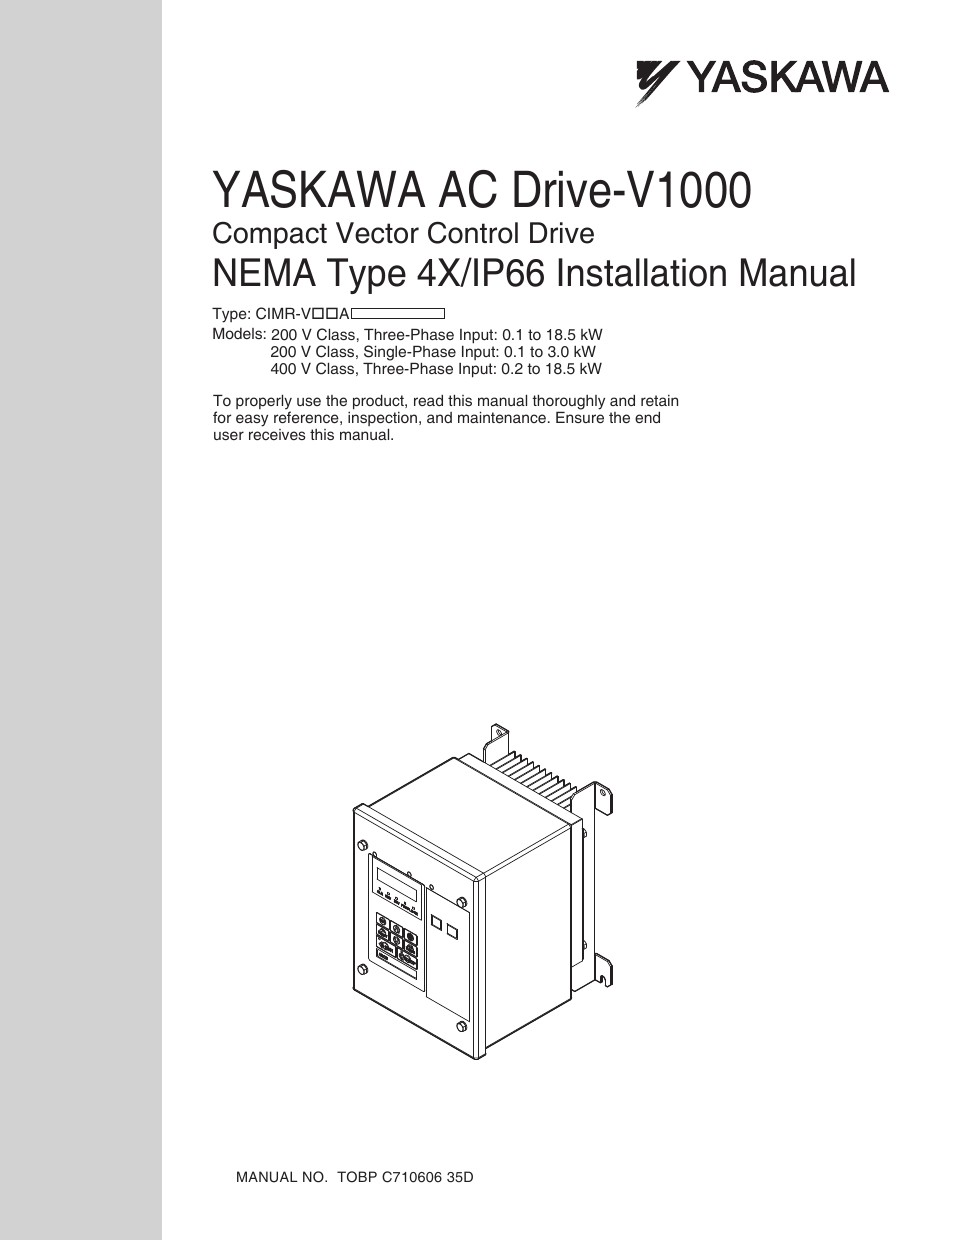 Yaskawa v1000 wiring diagram 4k wiki wallpapers 2018 yaskawa v1000 nema type 4x ip66 user manual 56 pages within wiring john deere 35d wiring asfbconference2016 Image collections